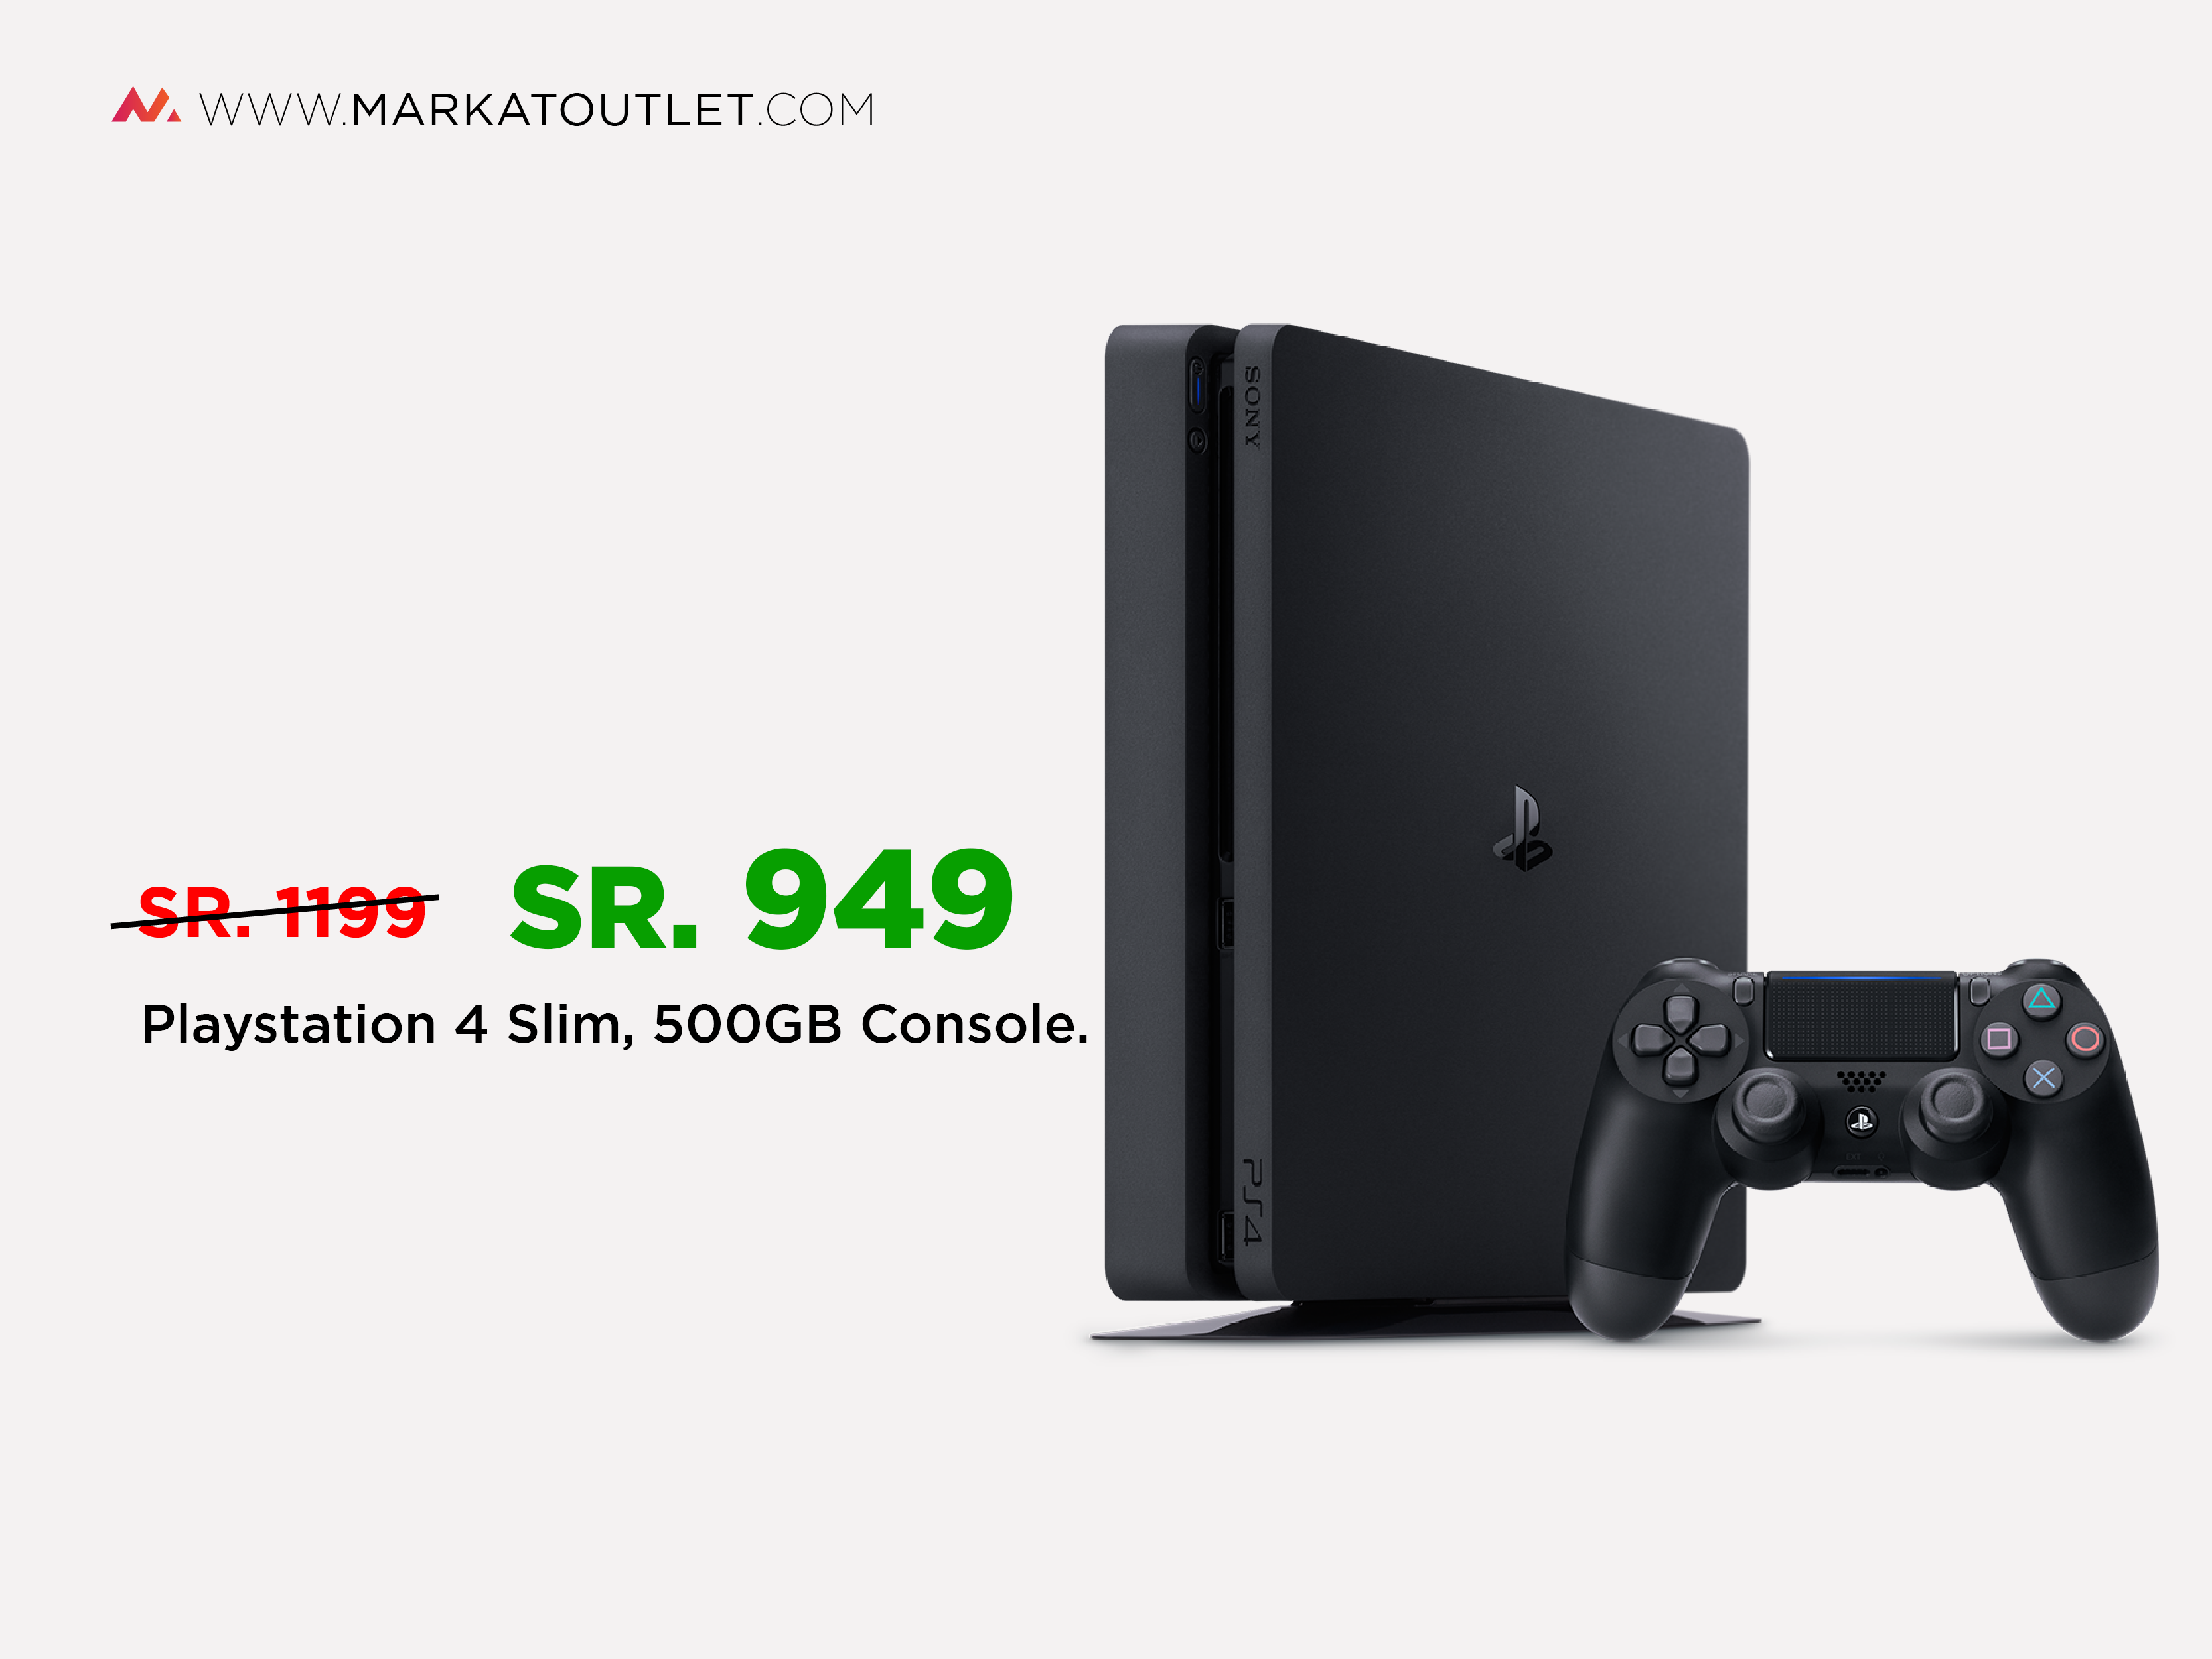 Ramzan Sale Playstation 4 Slim 500GB at Just 949 SR only !! Shop